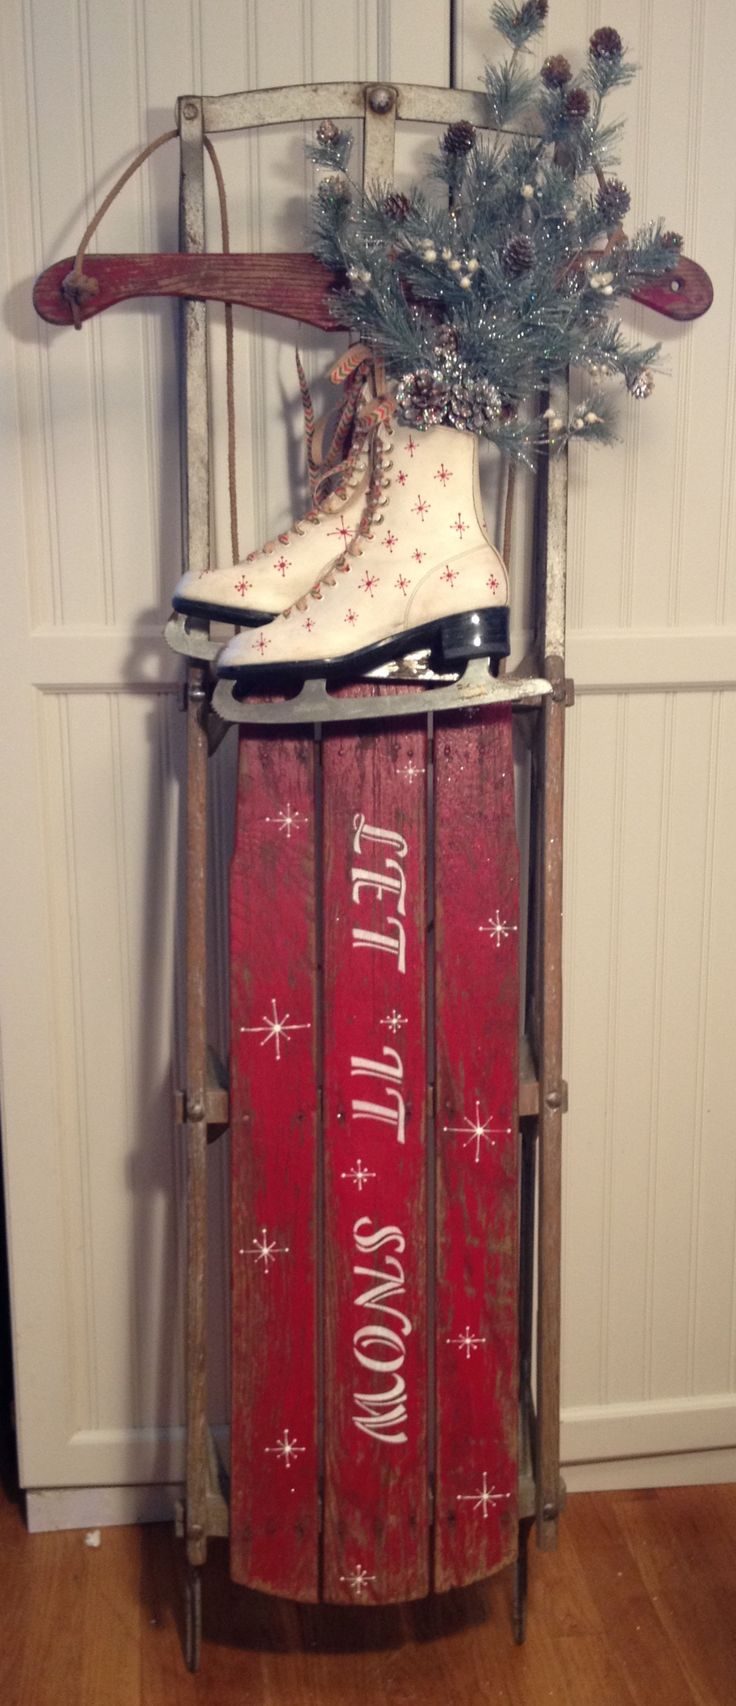 Antique sled hand painted let it snow snowflakes hand painted ice skates figure skates red white